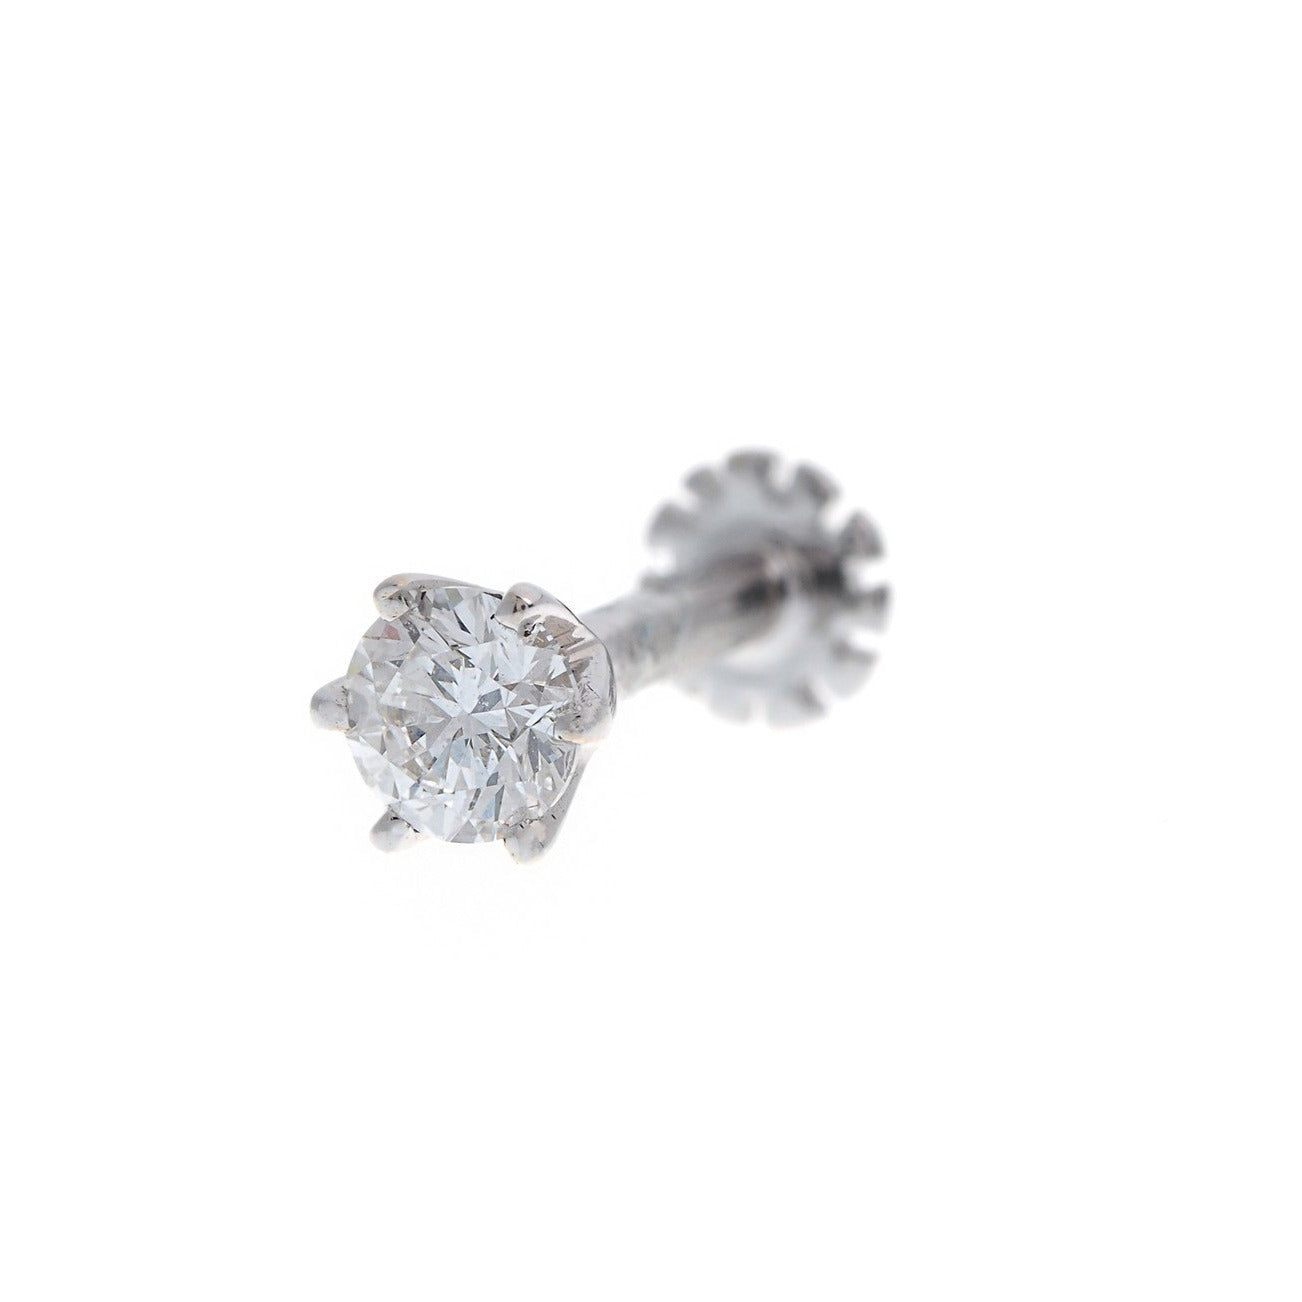 18ct White / Yellow Gold 0.15ct Diamond Screw Back Nose Stud, Minar Jewellers - 1